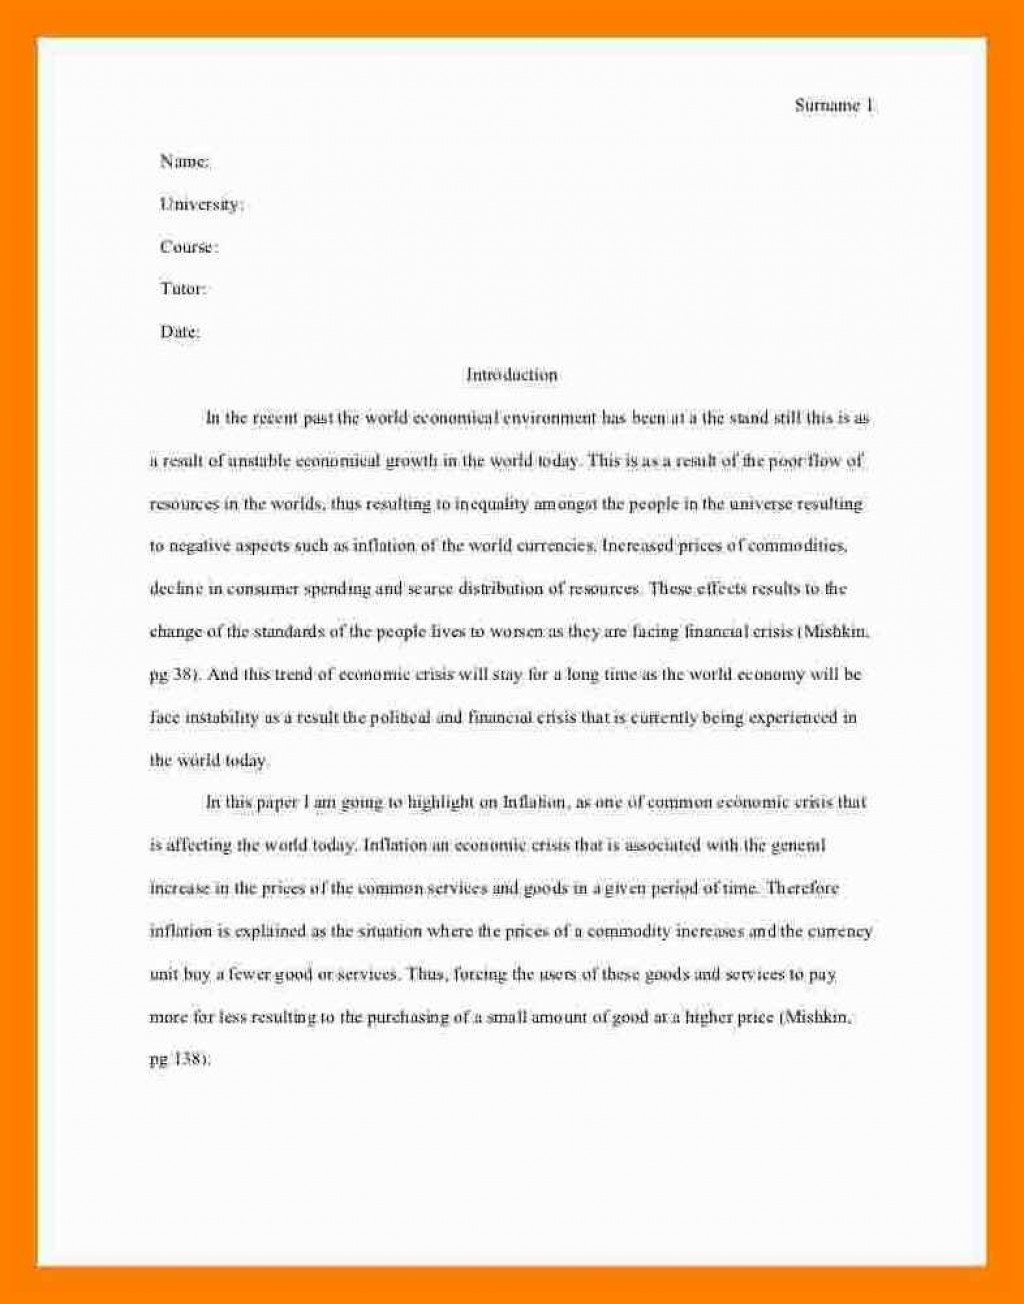 005 Essay Example Asa Format Sample Mla Style One Aspect Of The Current Economic Crisis Remarkable Reference Citation Website For Journal Article Large